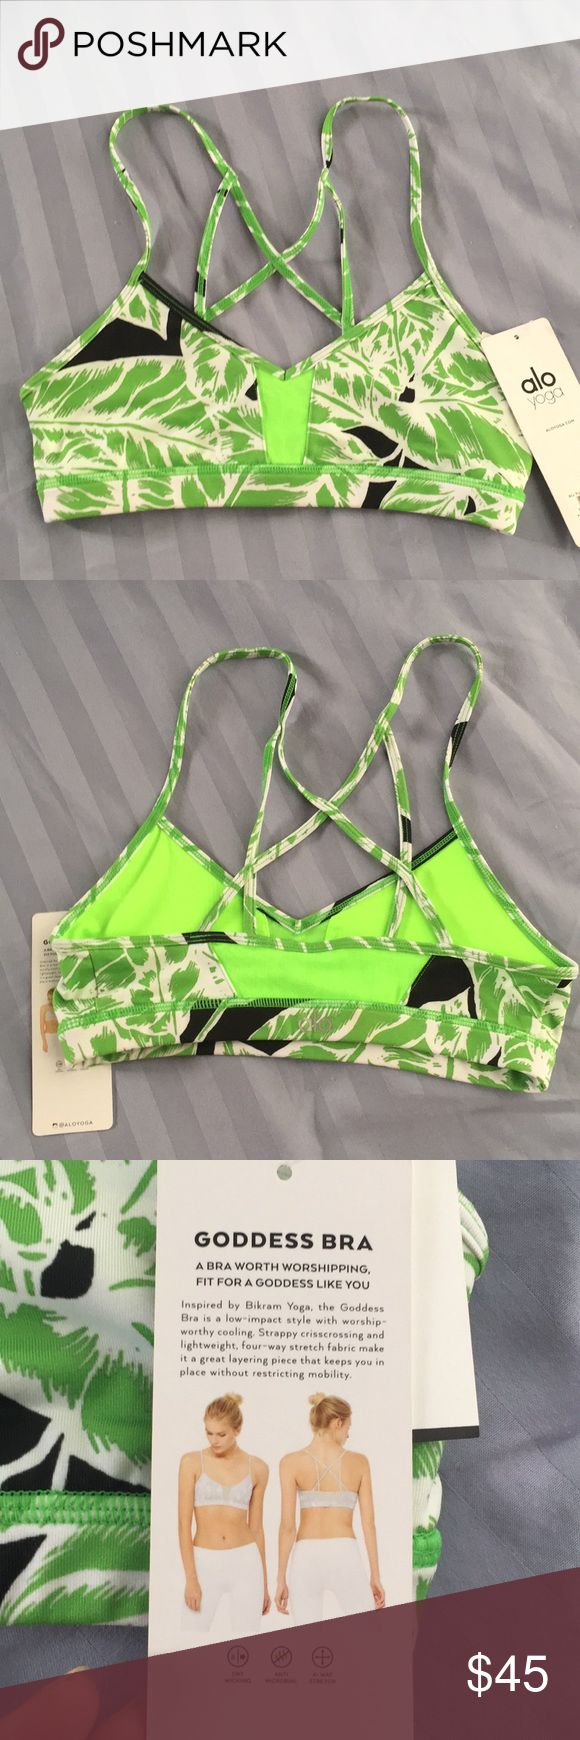 NWT Alo Yoga Goddess Bra in Palm Springs Glowstick NWT Alo Yoga Goddess Bra in Palm Springs Glowstick Size Small. No padding. Purchased from Neiman Marcus. ALO Yoga Intimates & Sleepwear Bras